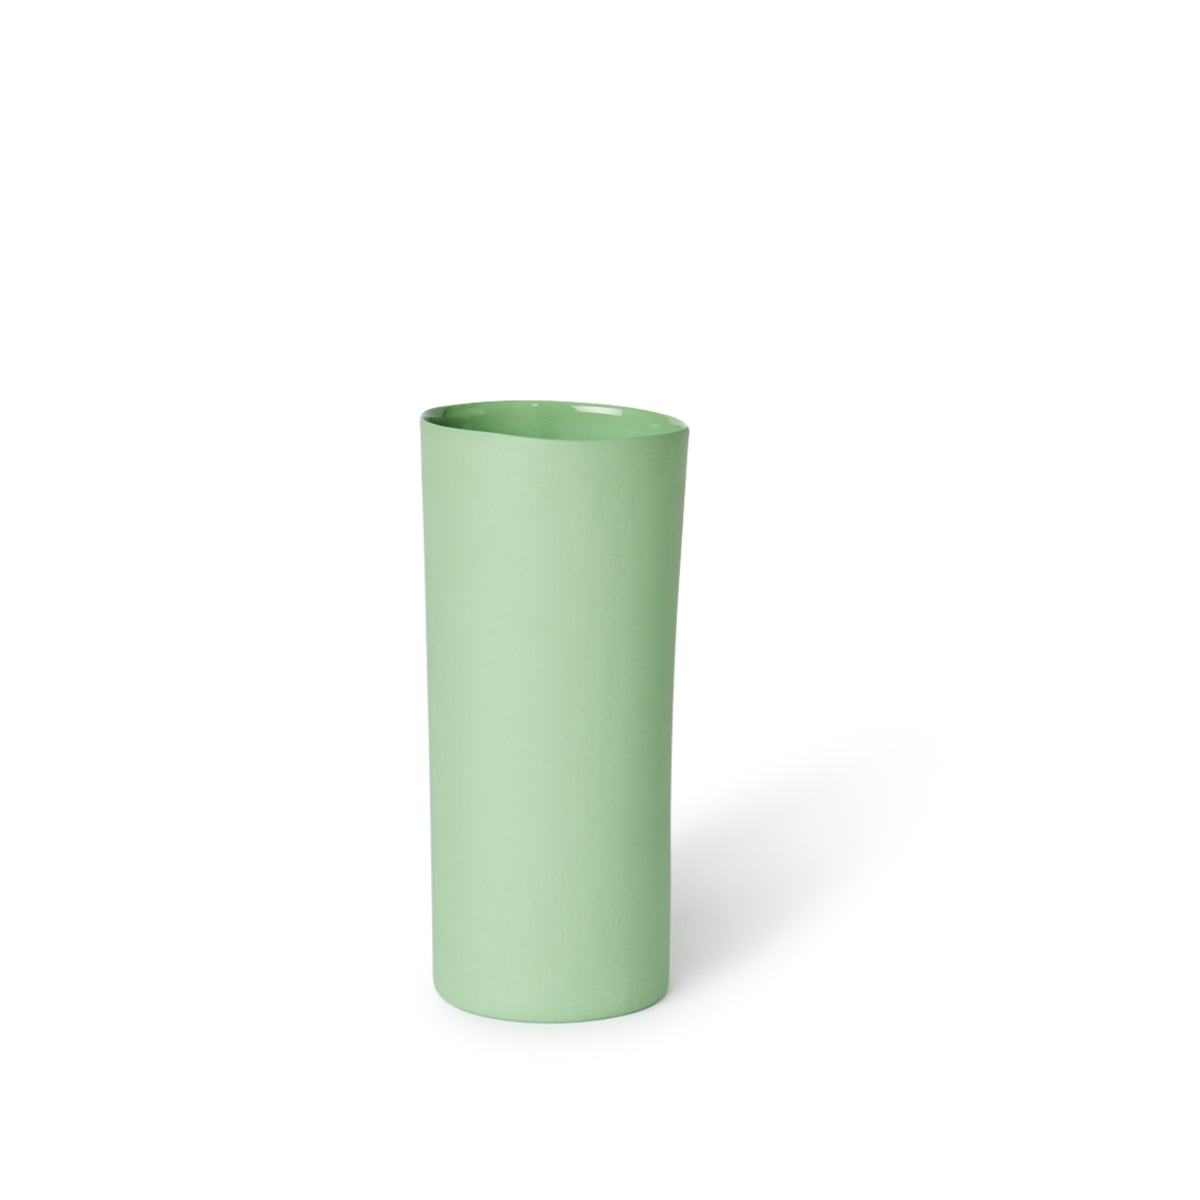 Round Vase Medium Wasabi